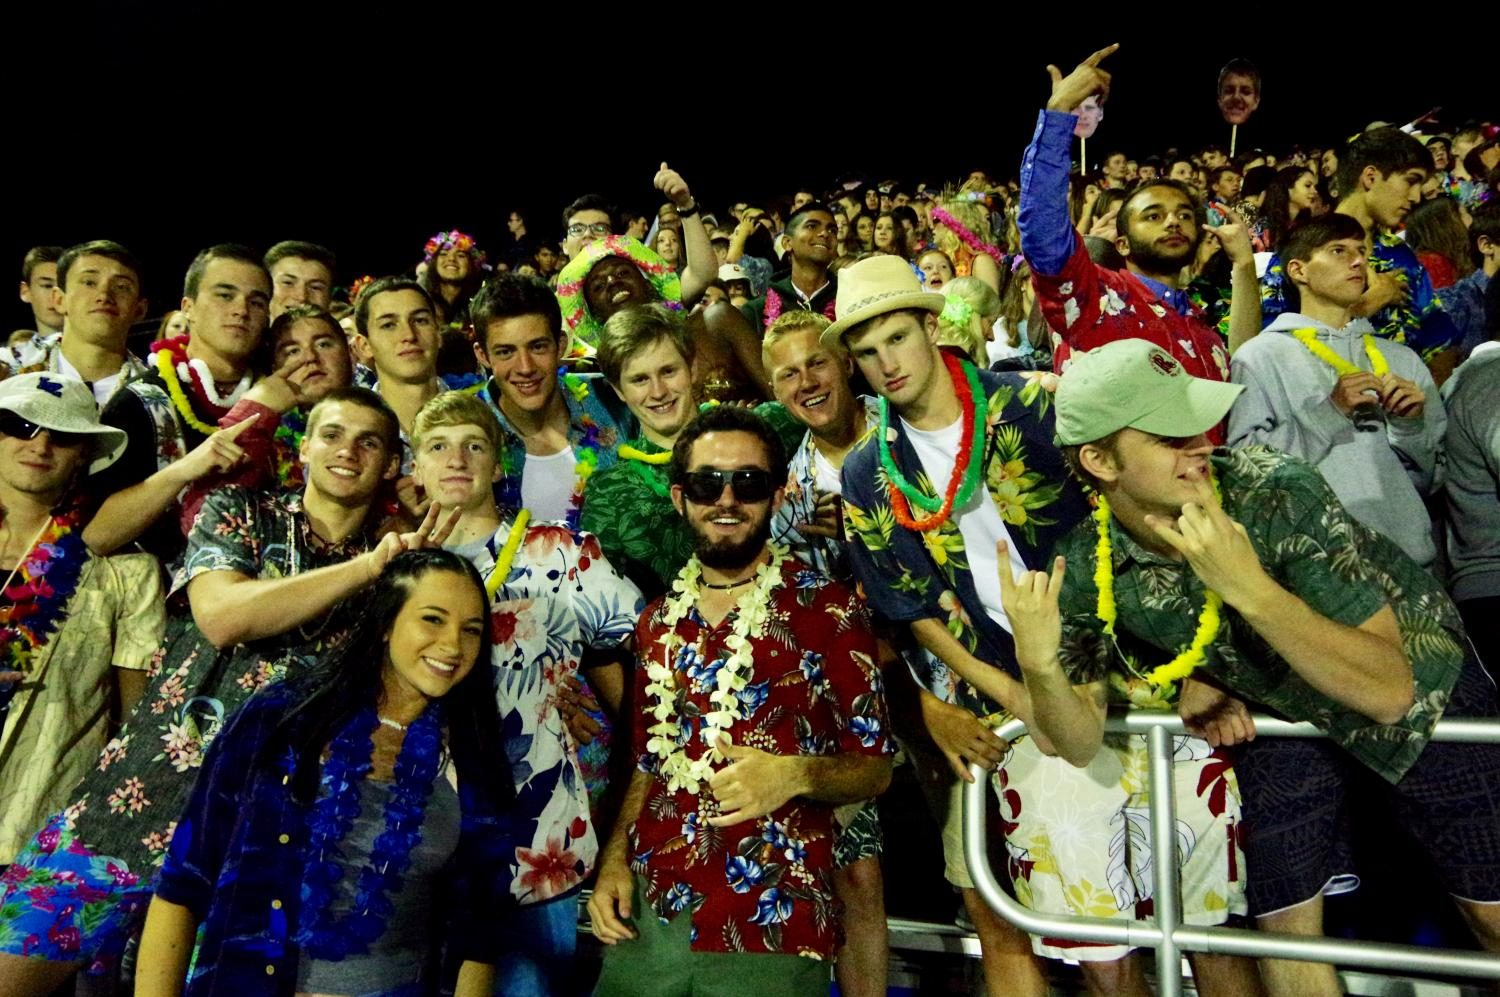 Student+Section+leaders+Jordan+Dickson%2C+Will+Ergastolo%2C+and+Ronan+Kennedy+join+students+in+the+stands+to+support+the+Bears+at+their+football+game.++